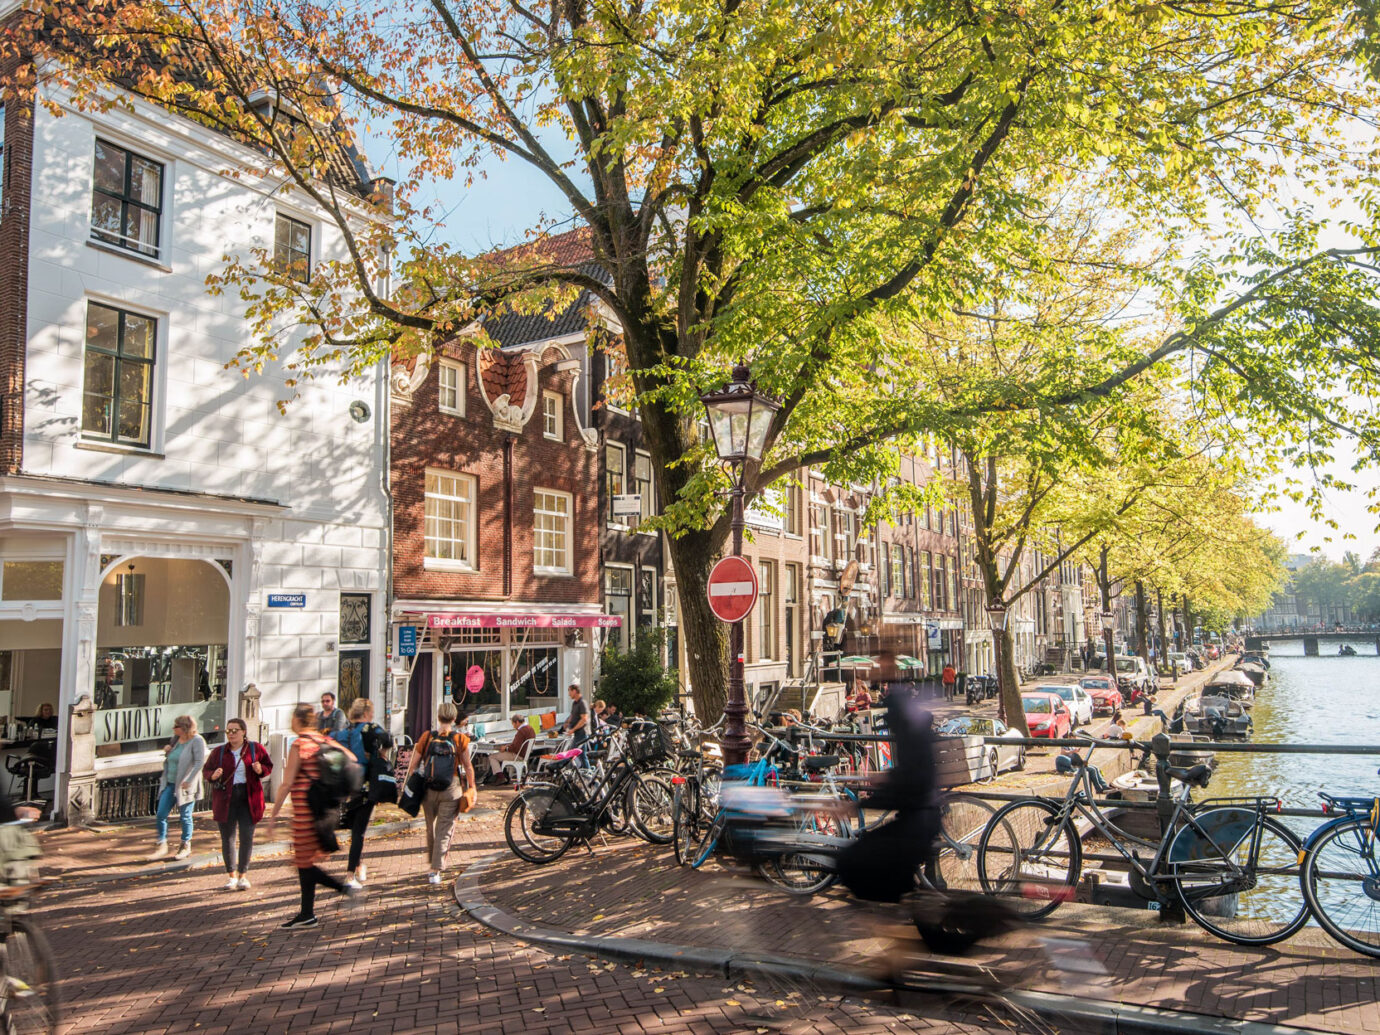 Autumn in the Jordaan neighbourhood, Amsterdam